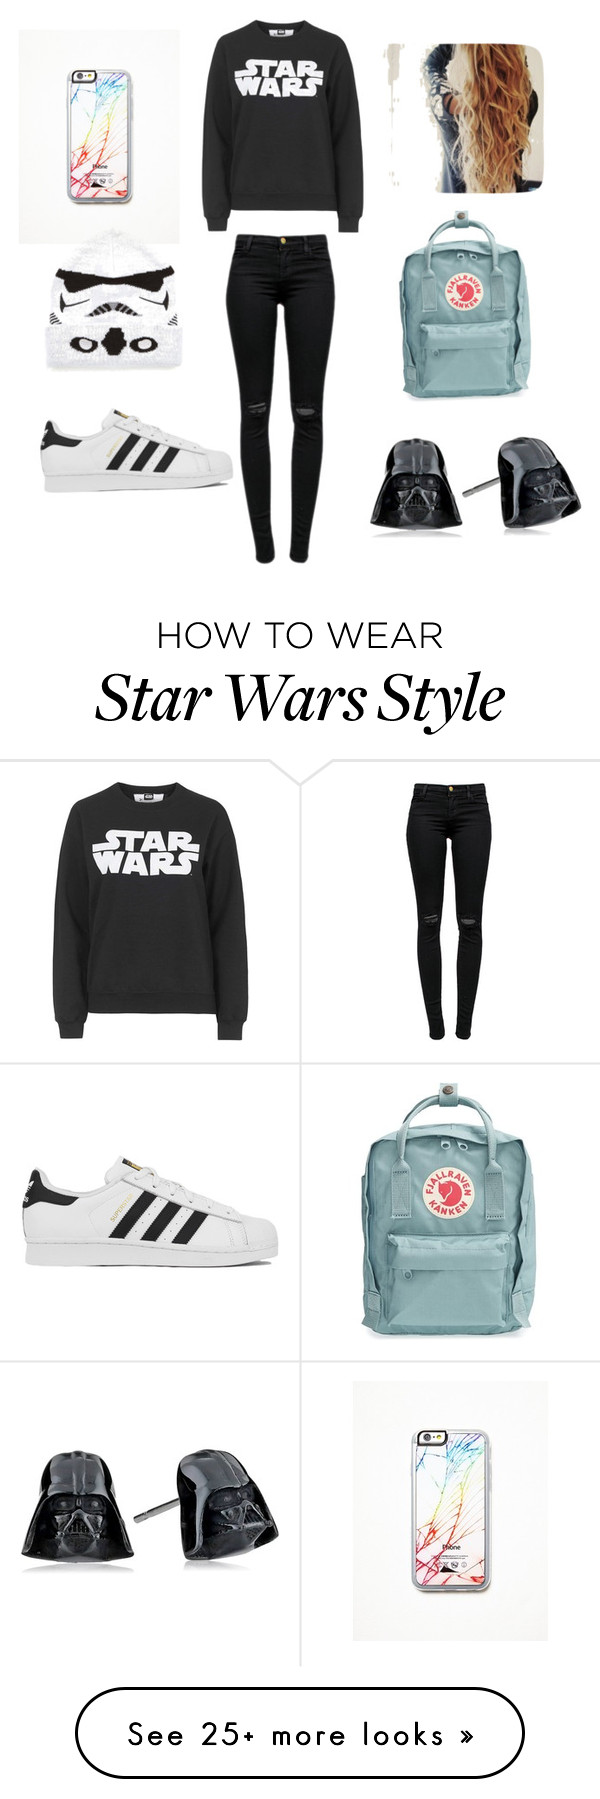 """""""Star Wars!"""" by jenben110 on Polyvore featuring J Brand, adidas, Fjällräven, Topshop, Free People, women's clothing, women, female, woman and misses"""